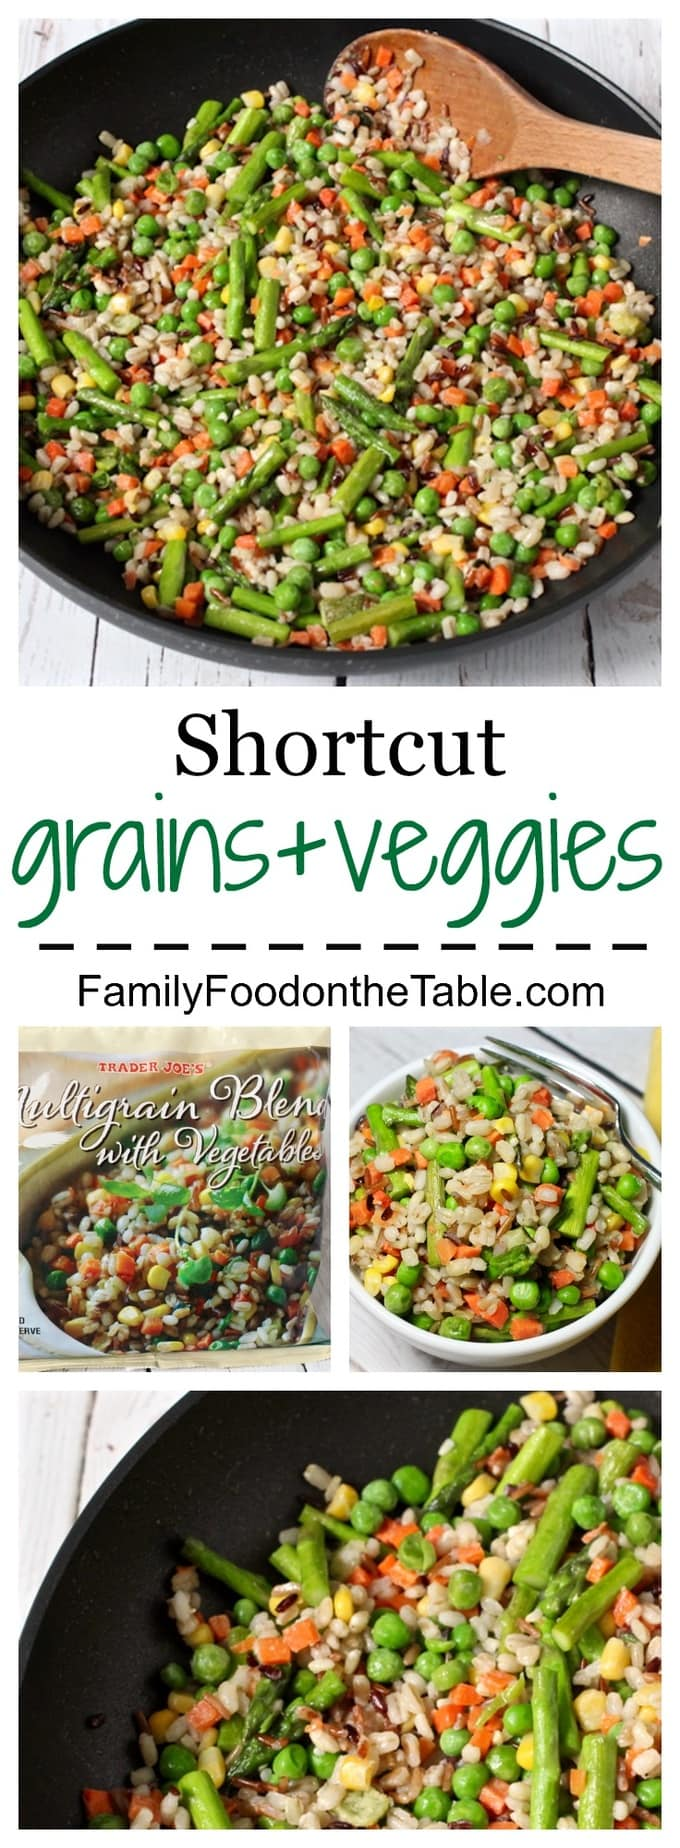 A super easy, but wholesome, shortcut side for dinner on a busy weeknight!